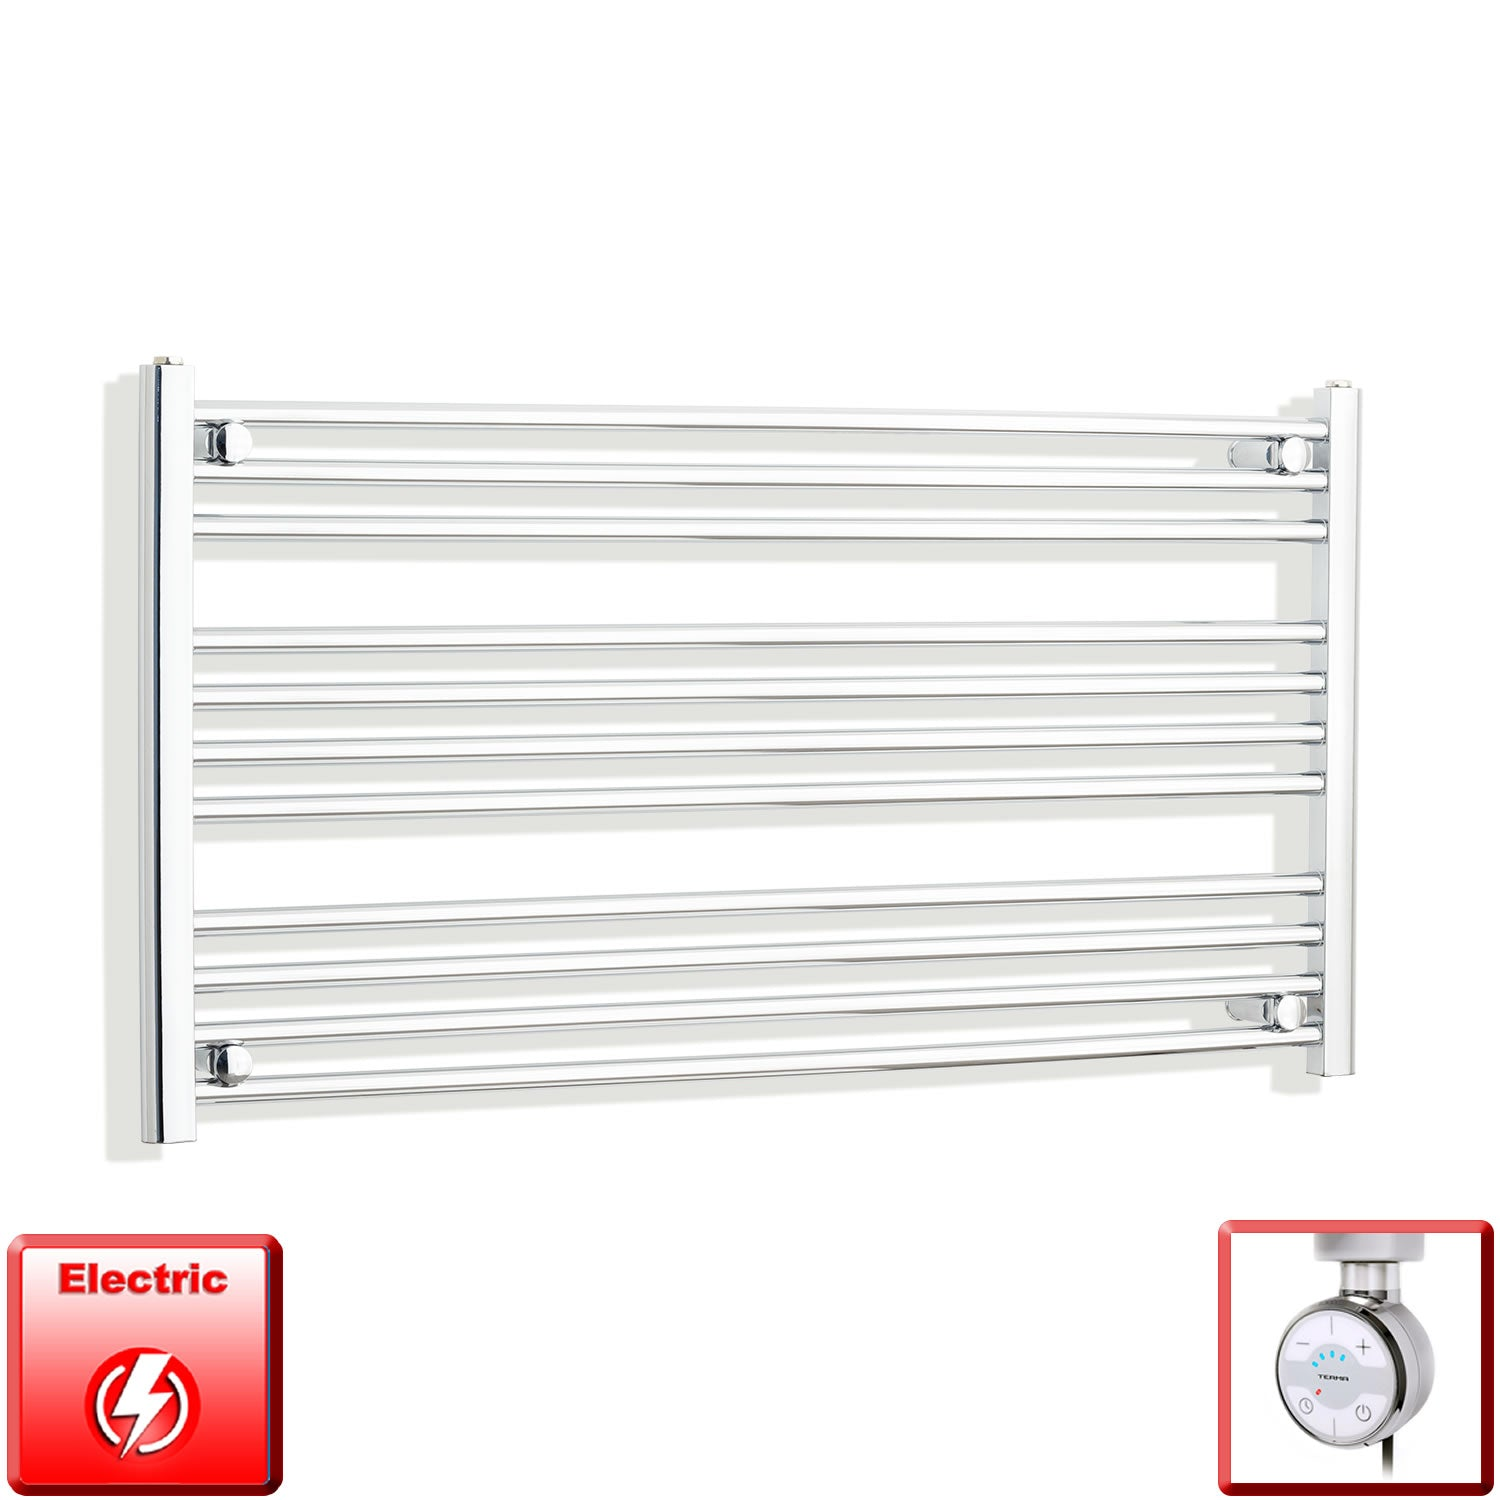 1000mm Wide 600mm High Flat Chrome Pre-Filled Electric Heated Towel Rail Radiator HTR,MOA Thermostatic Element